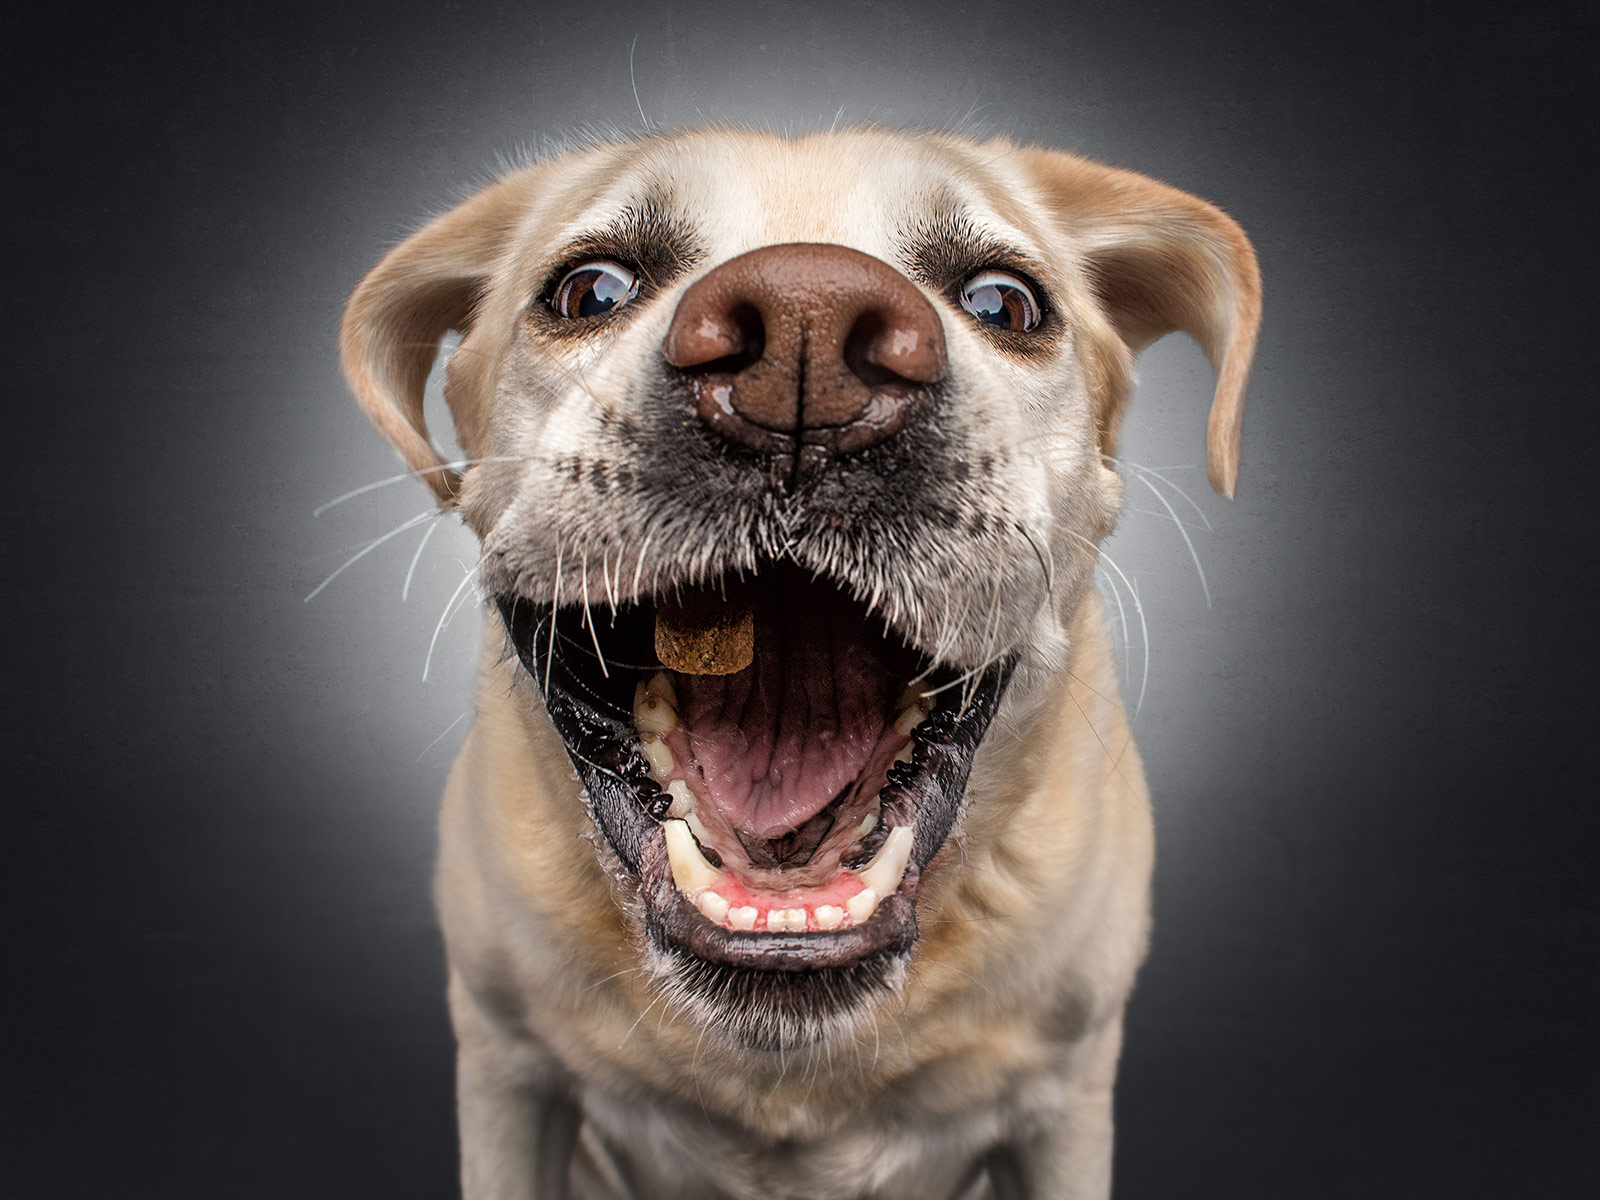 The unbridled joy of dogs catching treats